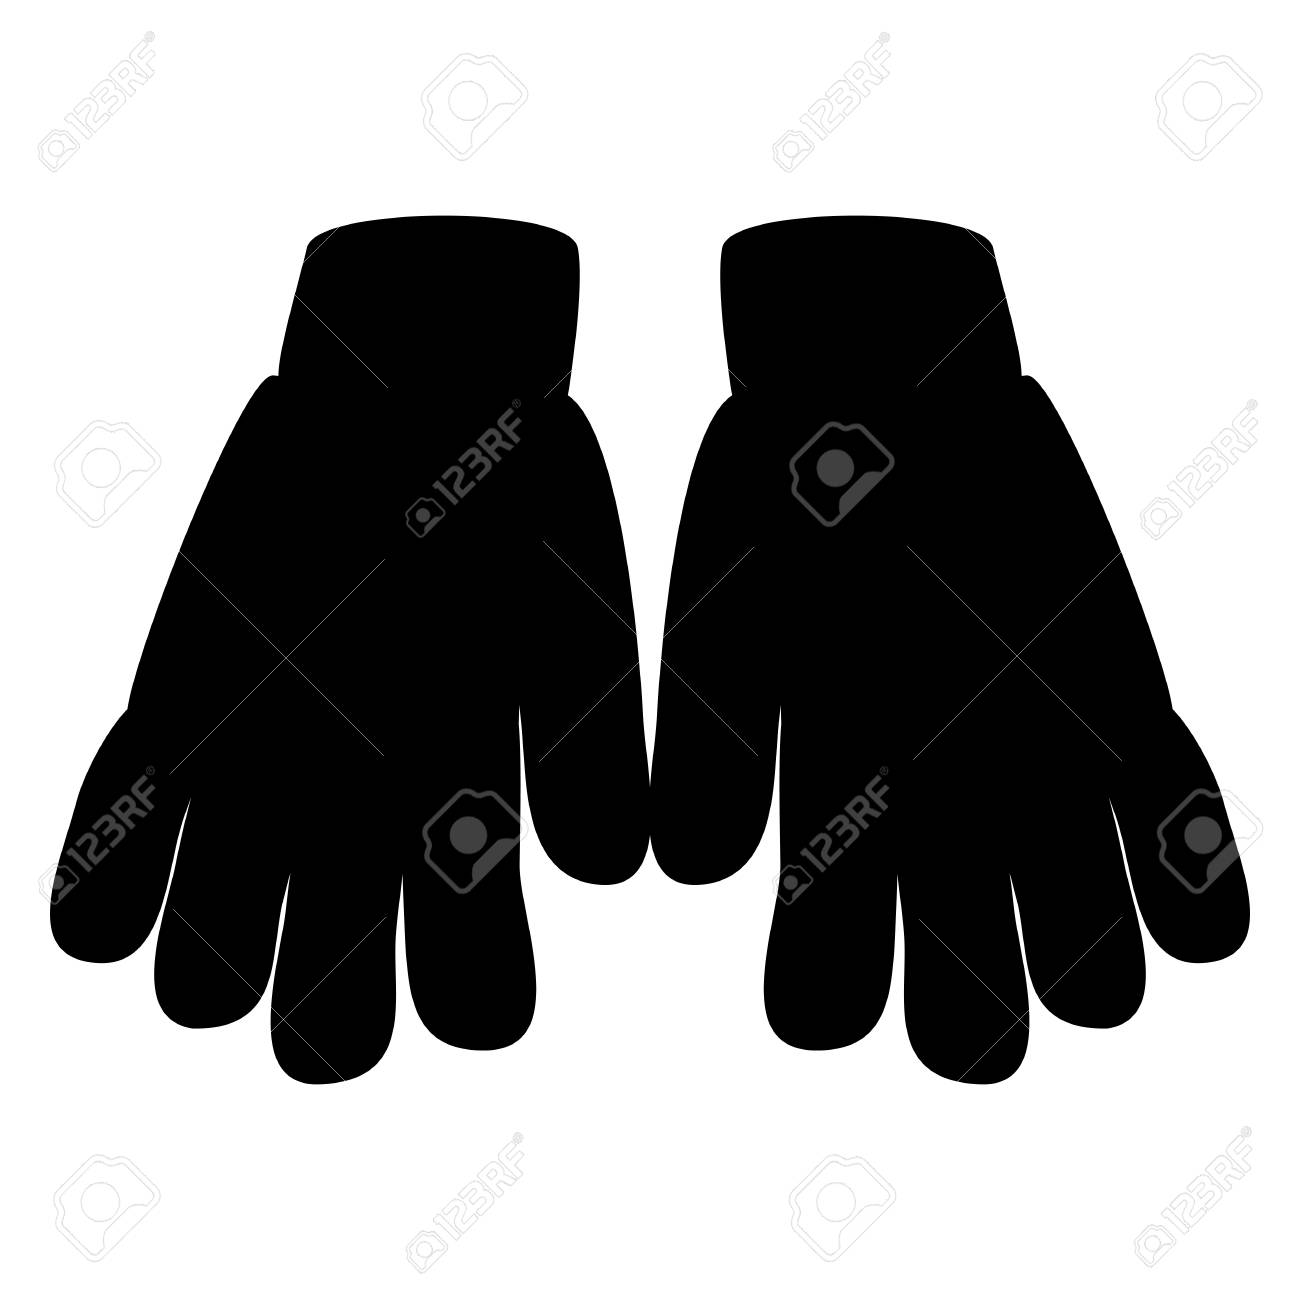 winter gloves silhouette icon symbol design royalty free cliparts